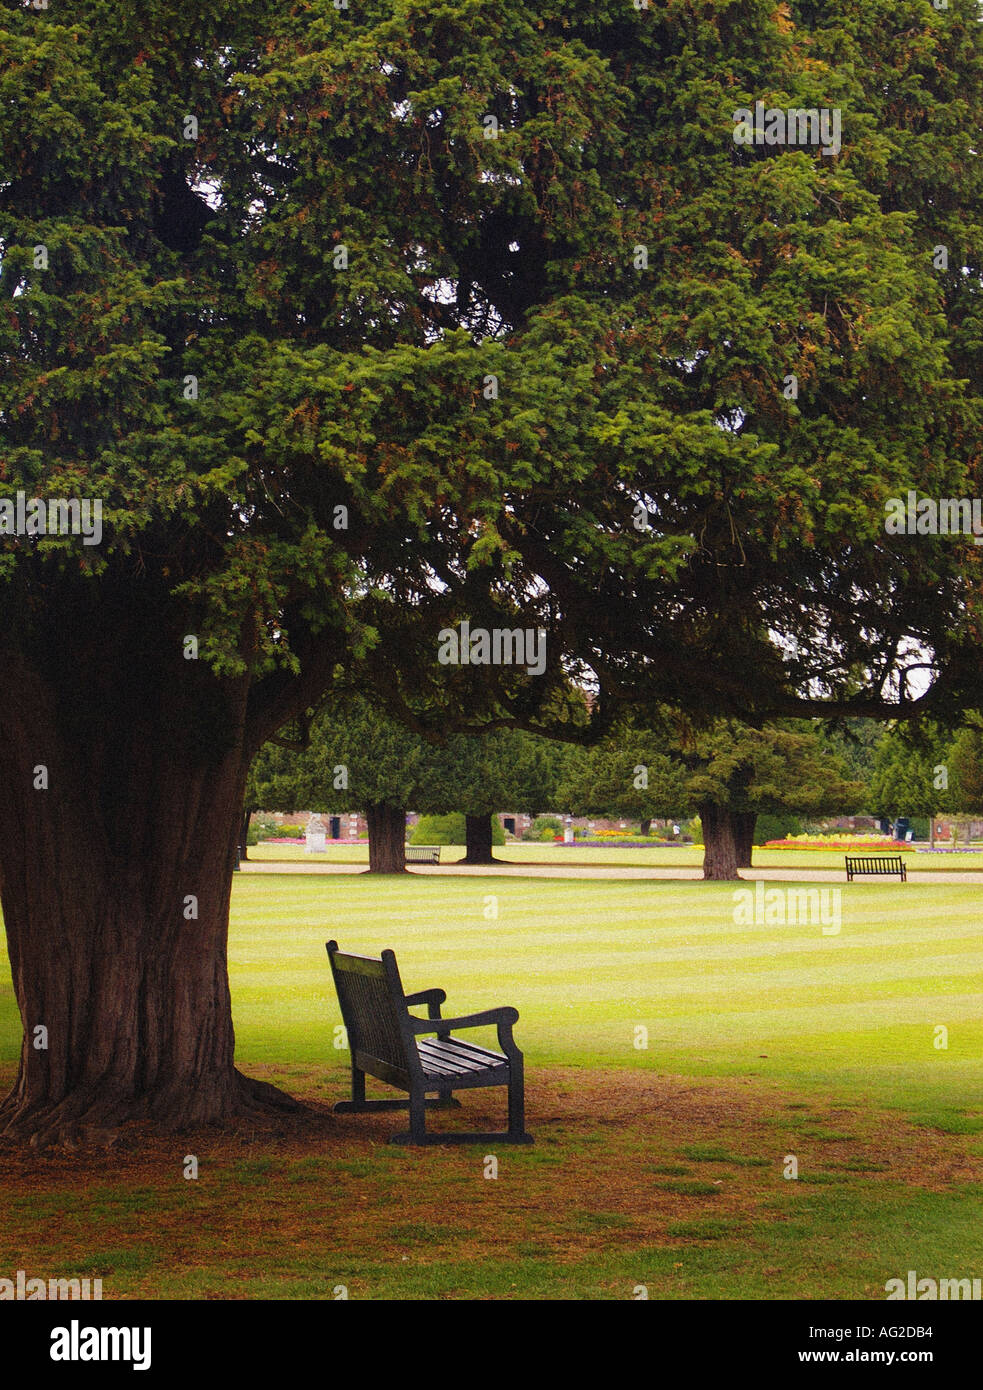 park bench under tree - Stock Image